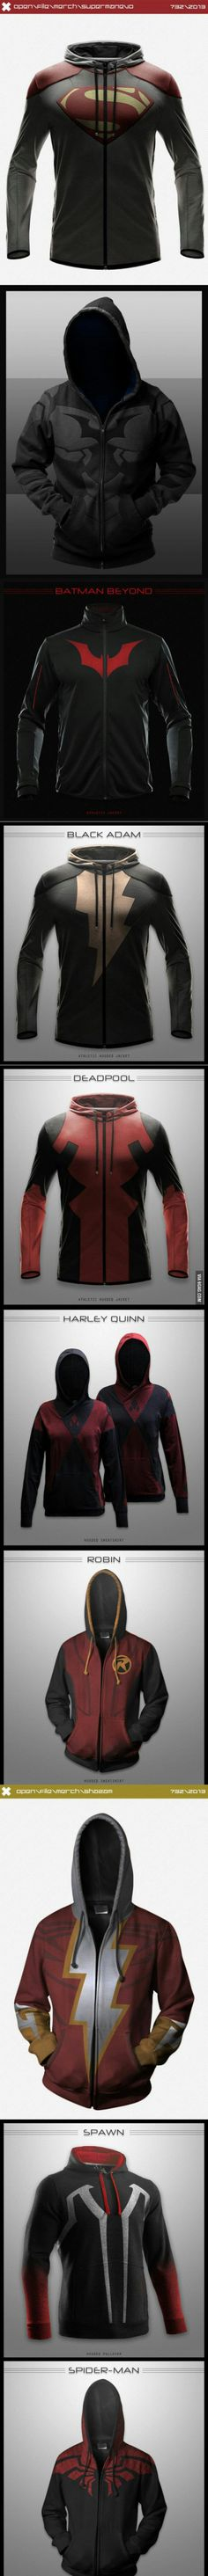 So cool!! I want those!! Especially the deadpool jacket